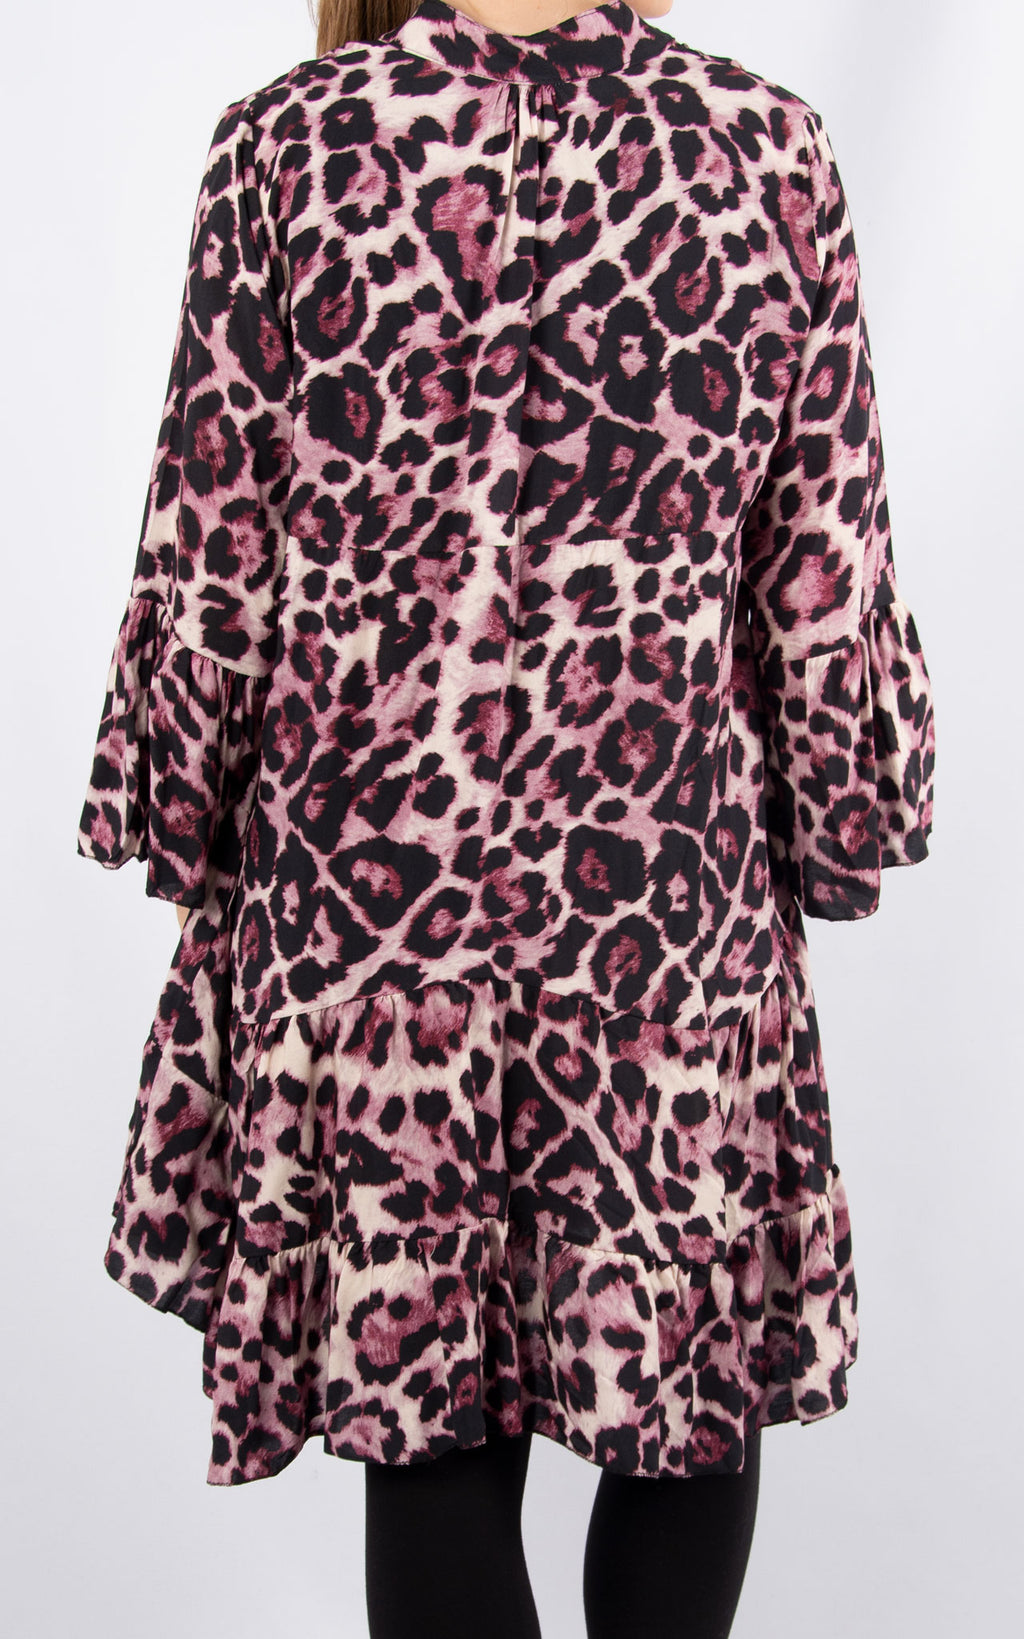 Alex Smock Dress | Pink Leopard